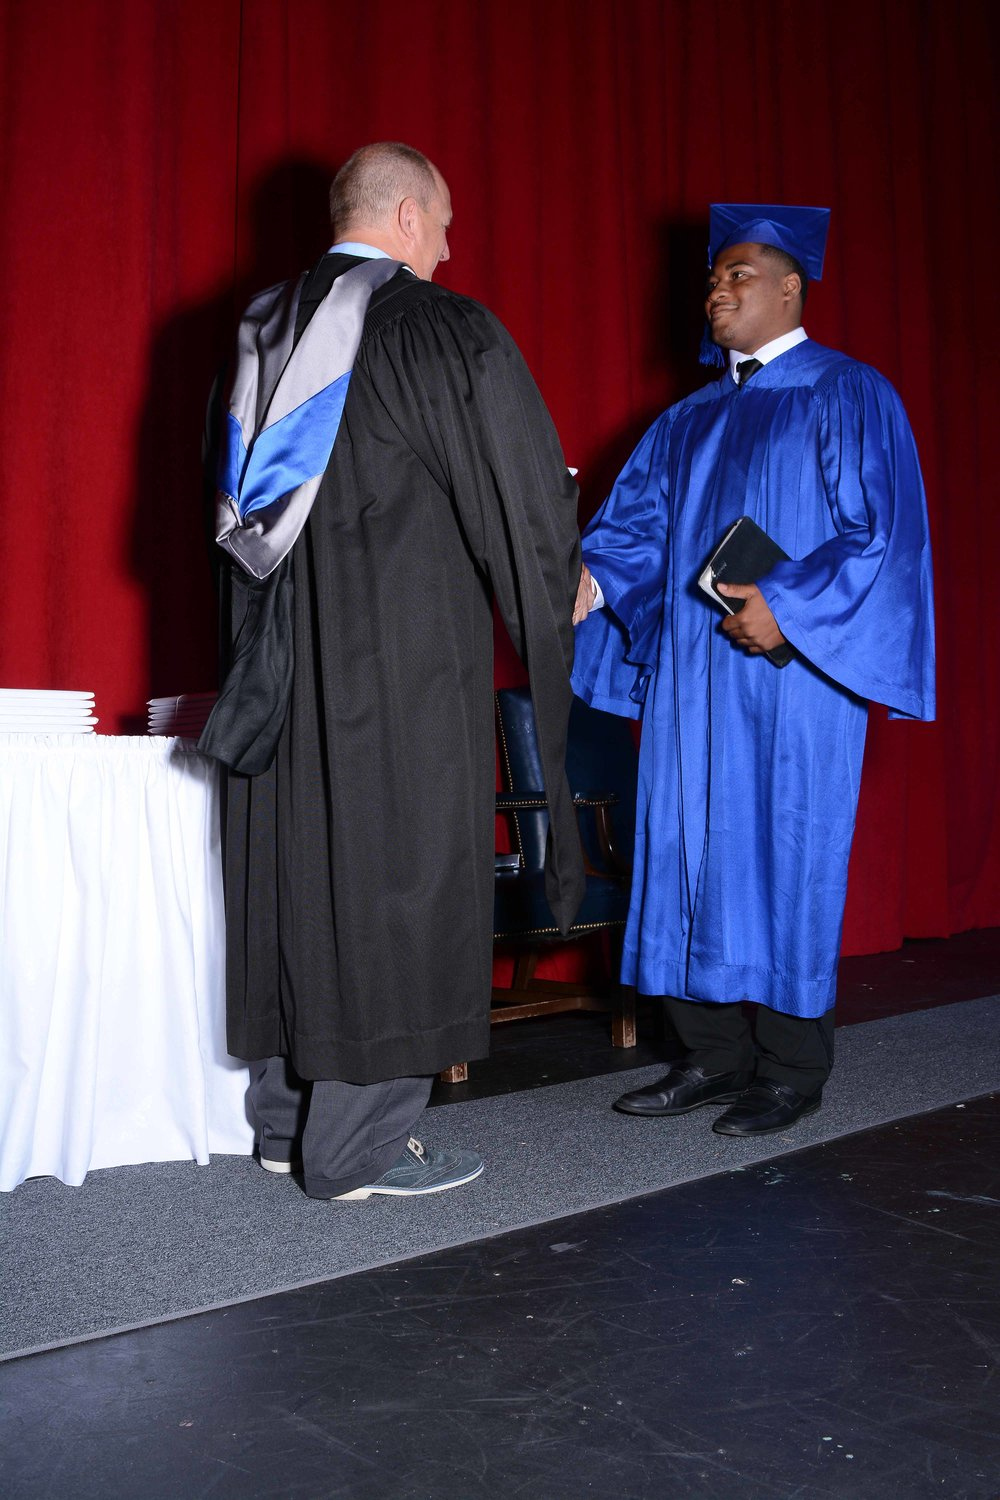 May14 Commencement154.jpg